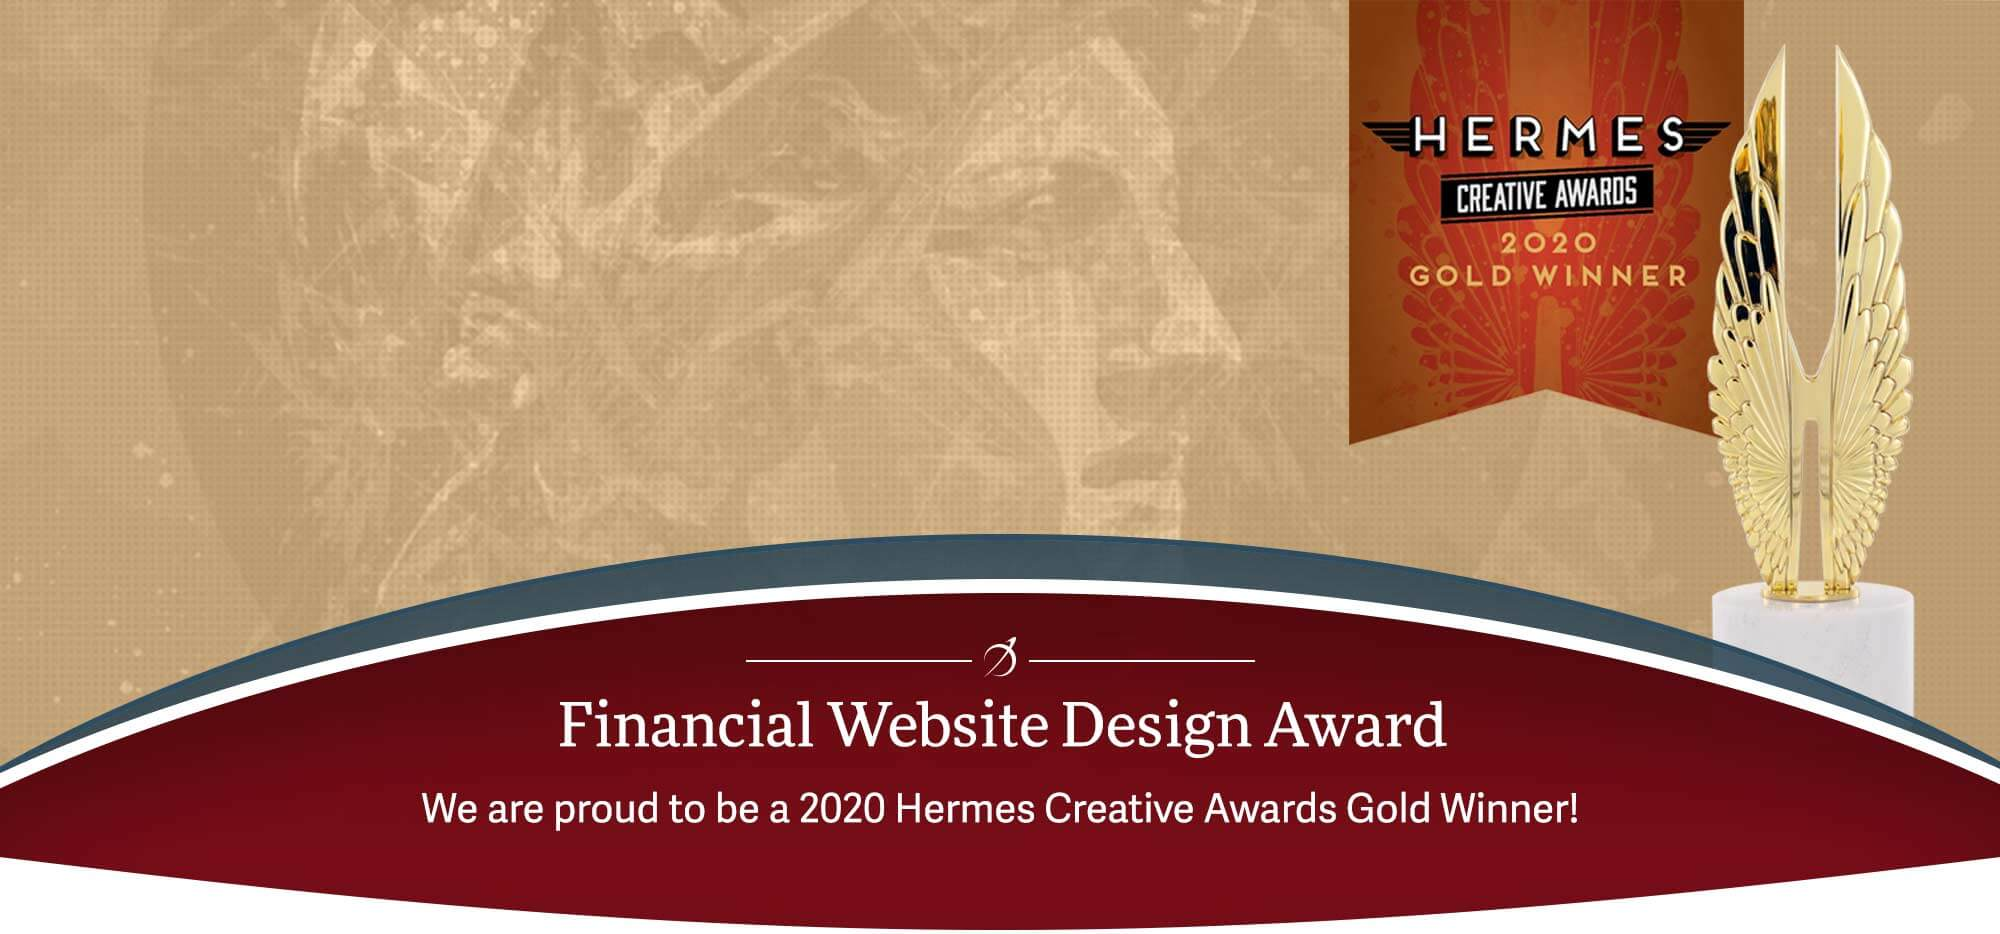 Financial Website Design Award We are proud to be a 2020 Hermes Creative Award Gold Winner!